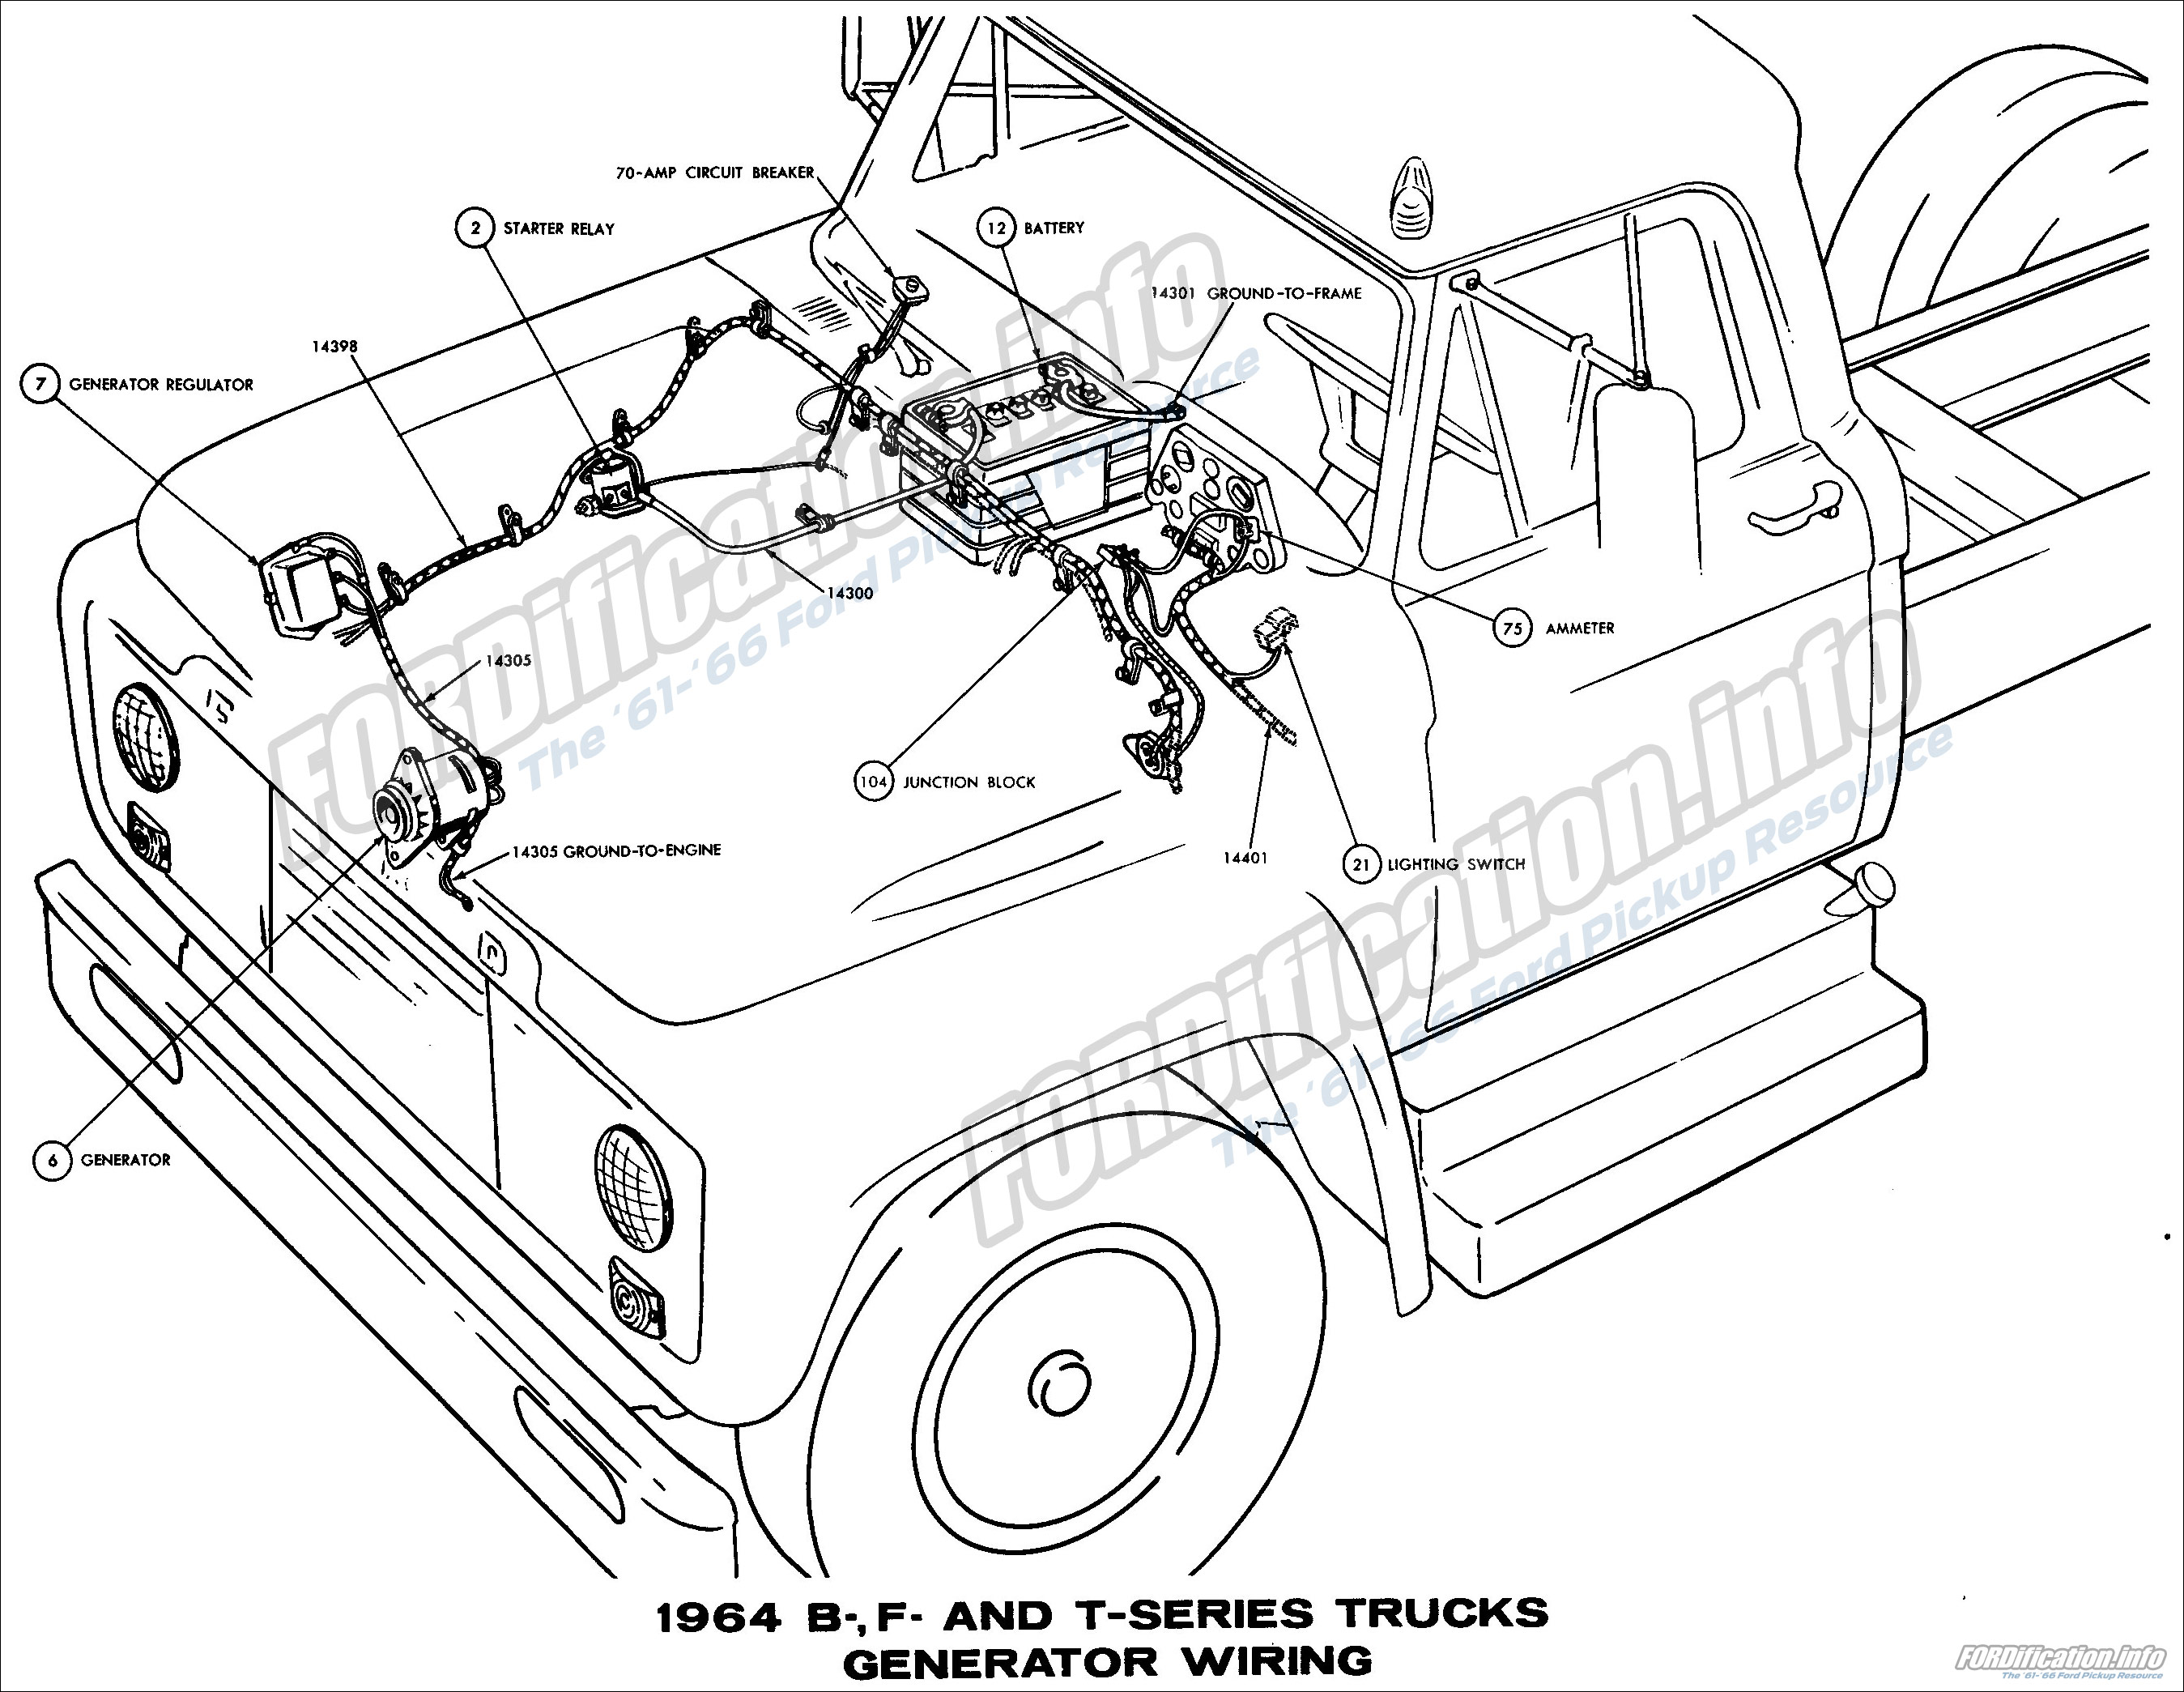 1964 ford truck wiring diagrams fordification info the 61 66 rh fordification info